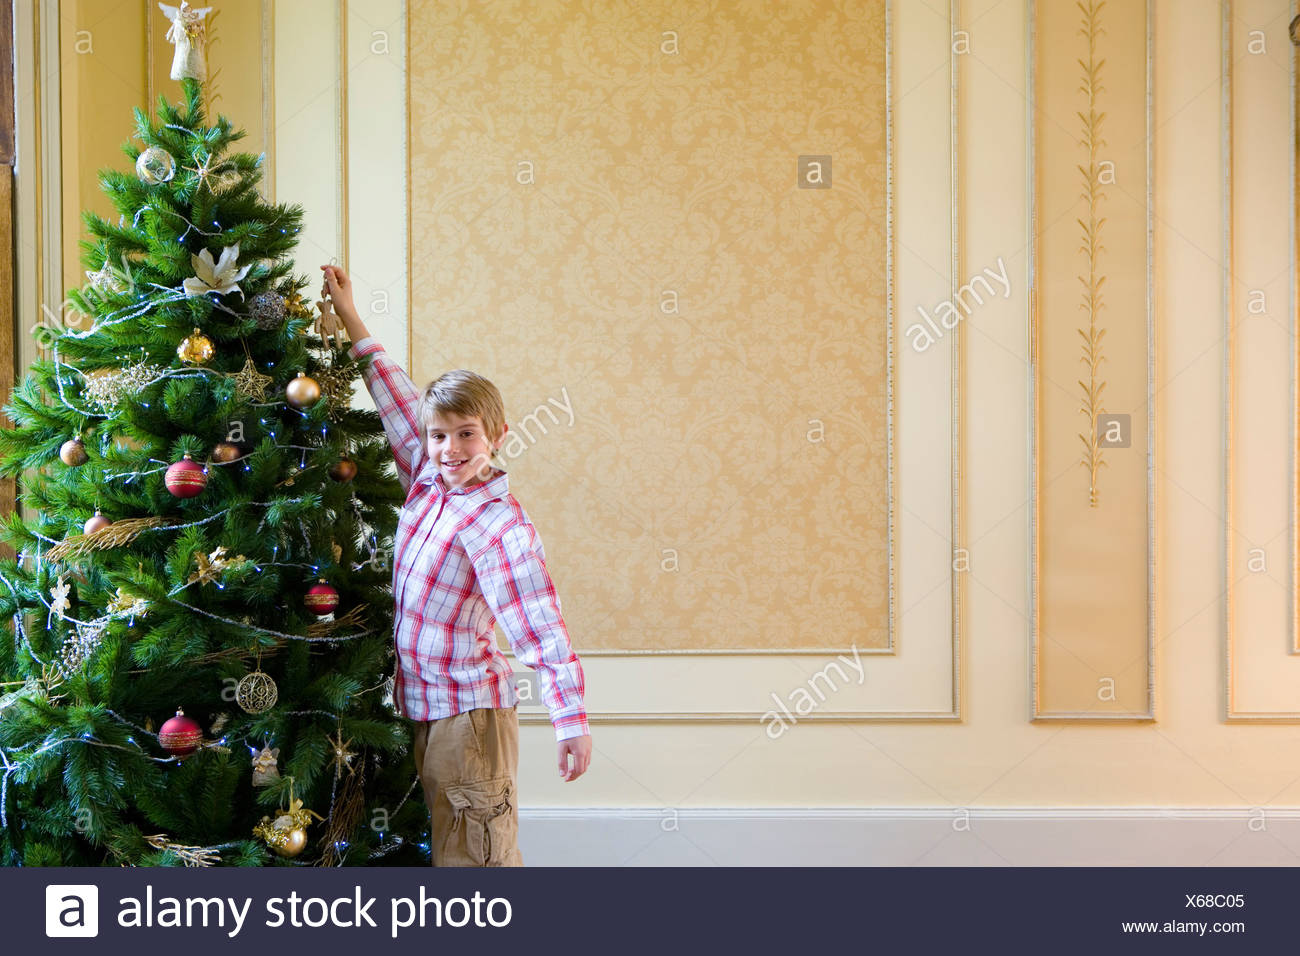 Boy (7-9) hanging decoration on Christmas tree, smiling portrait - Stock Image